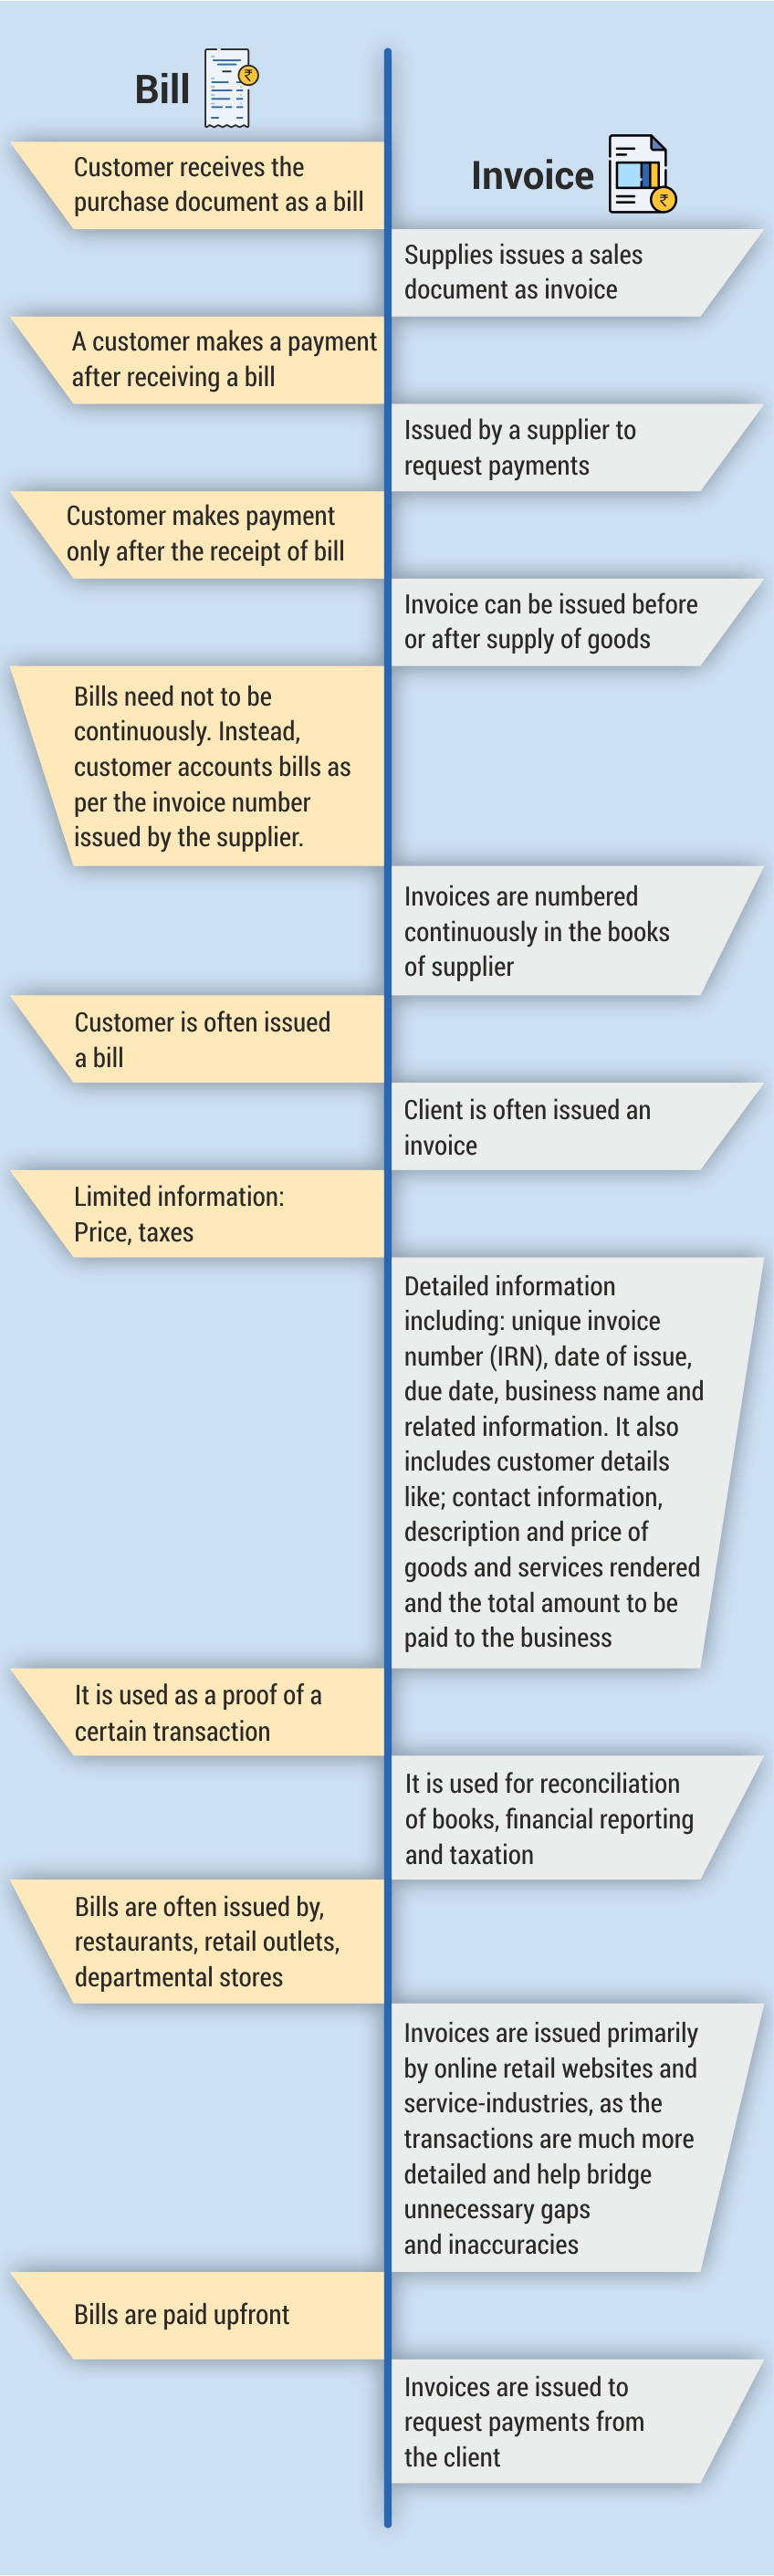 Difference-between-a-Bill-and-Invoice-1